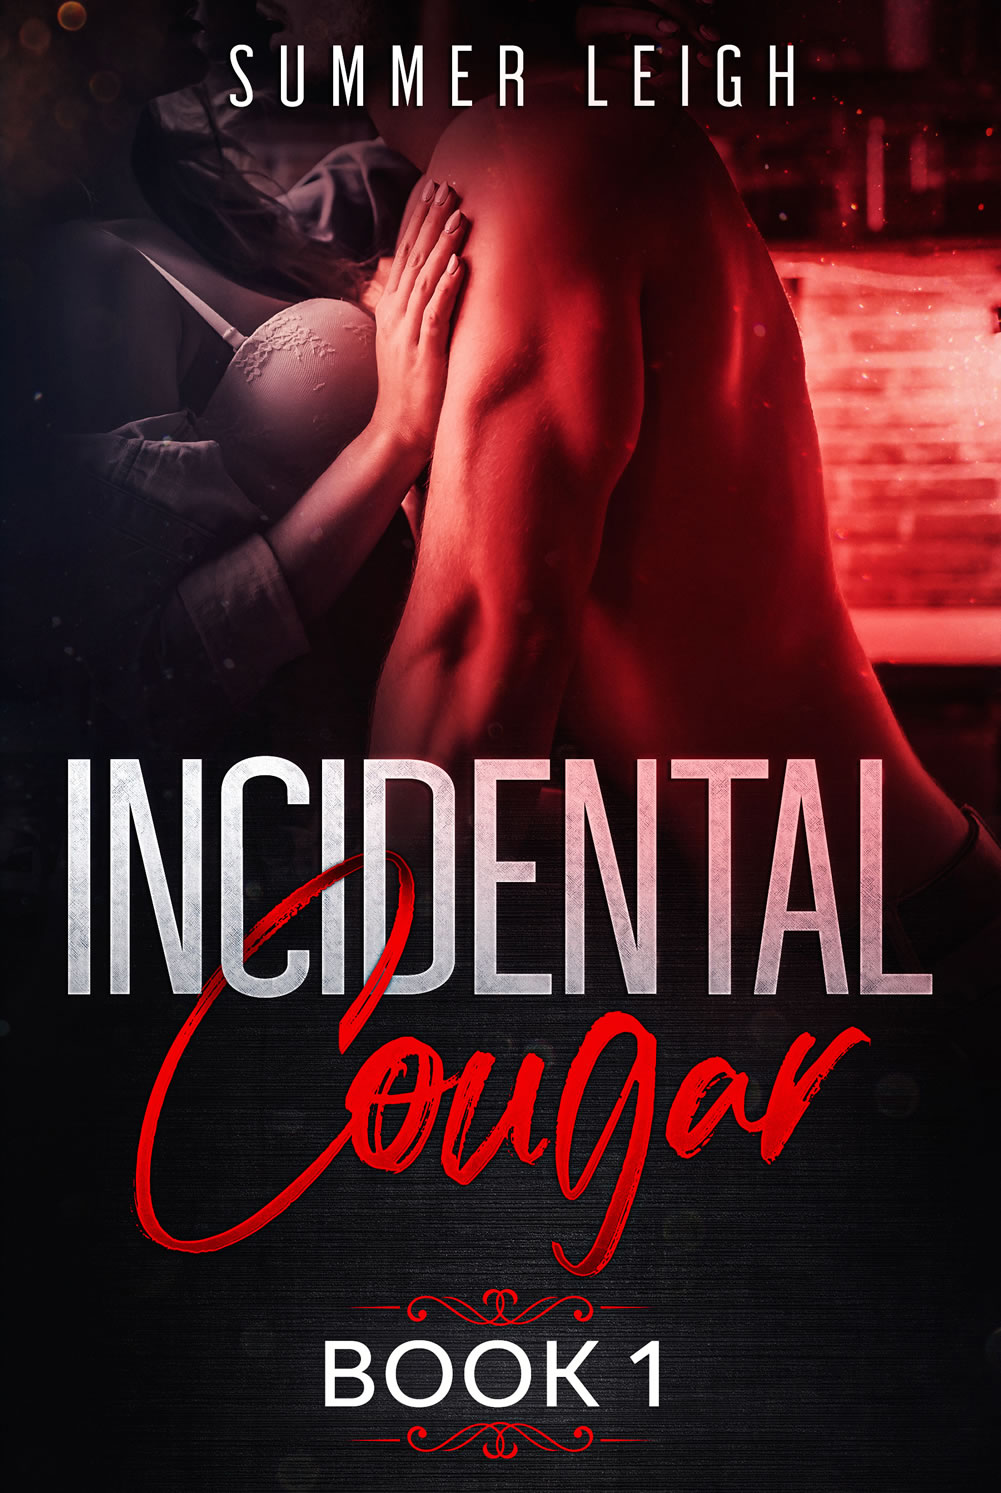 Incidental Cougar Book 1 ebook